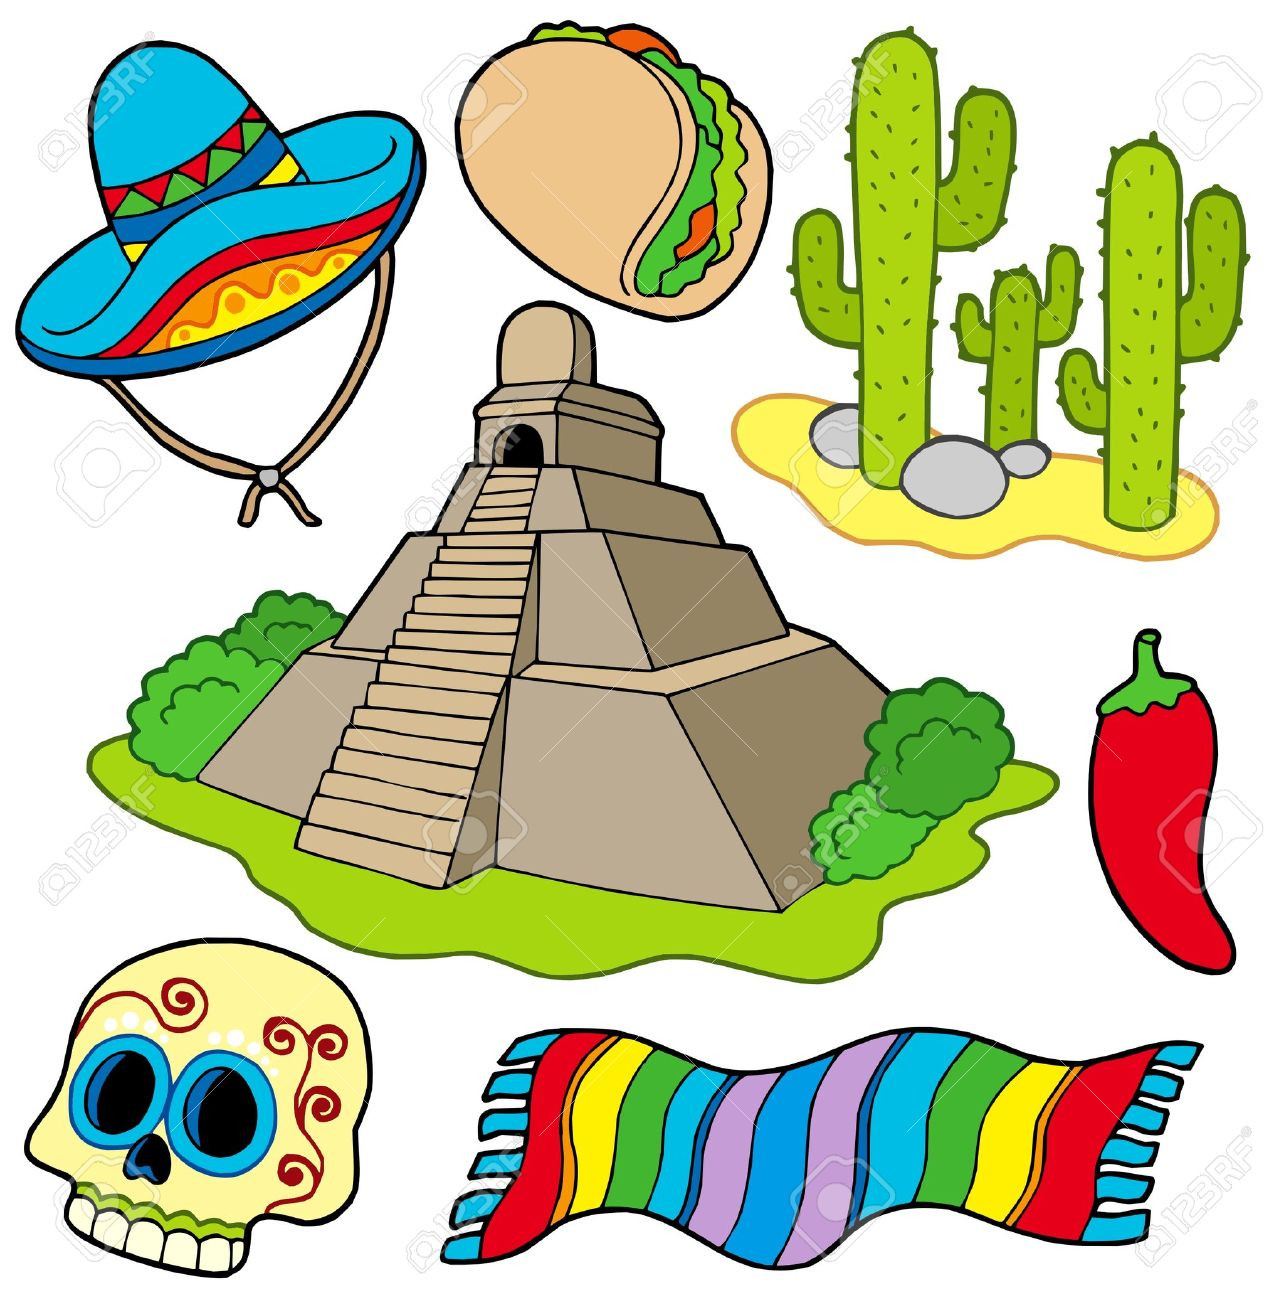 mexican images clipart #10